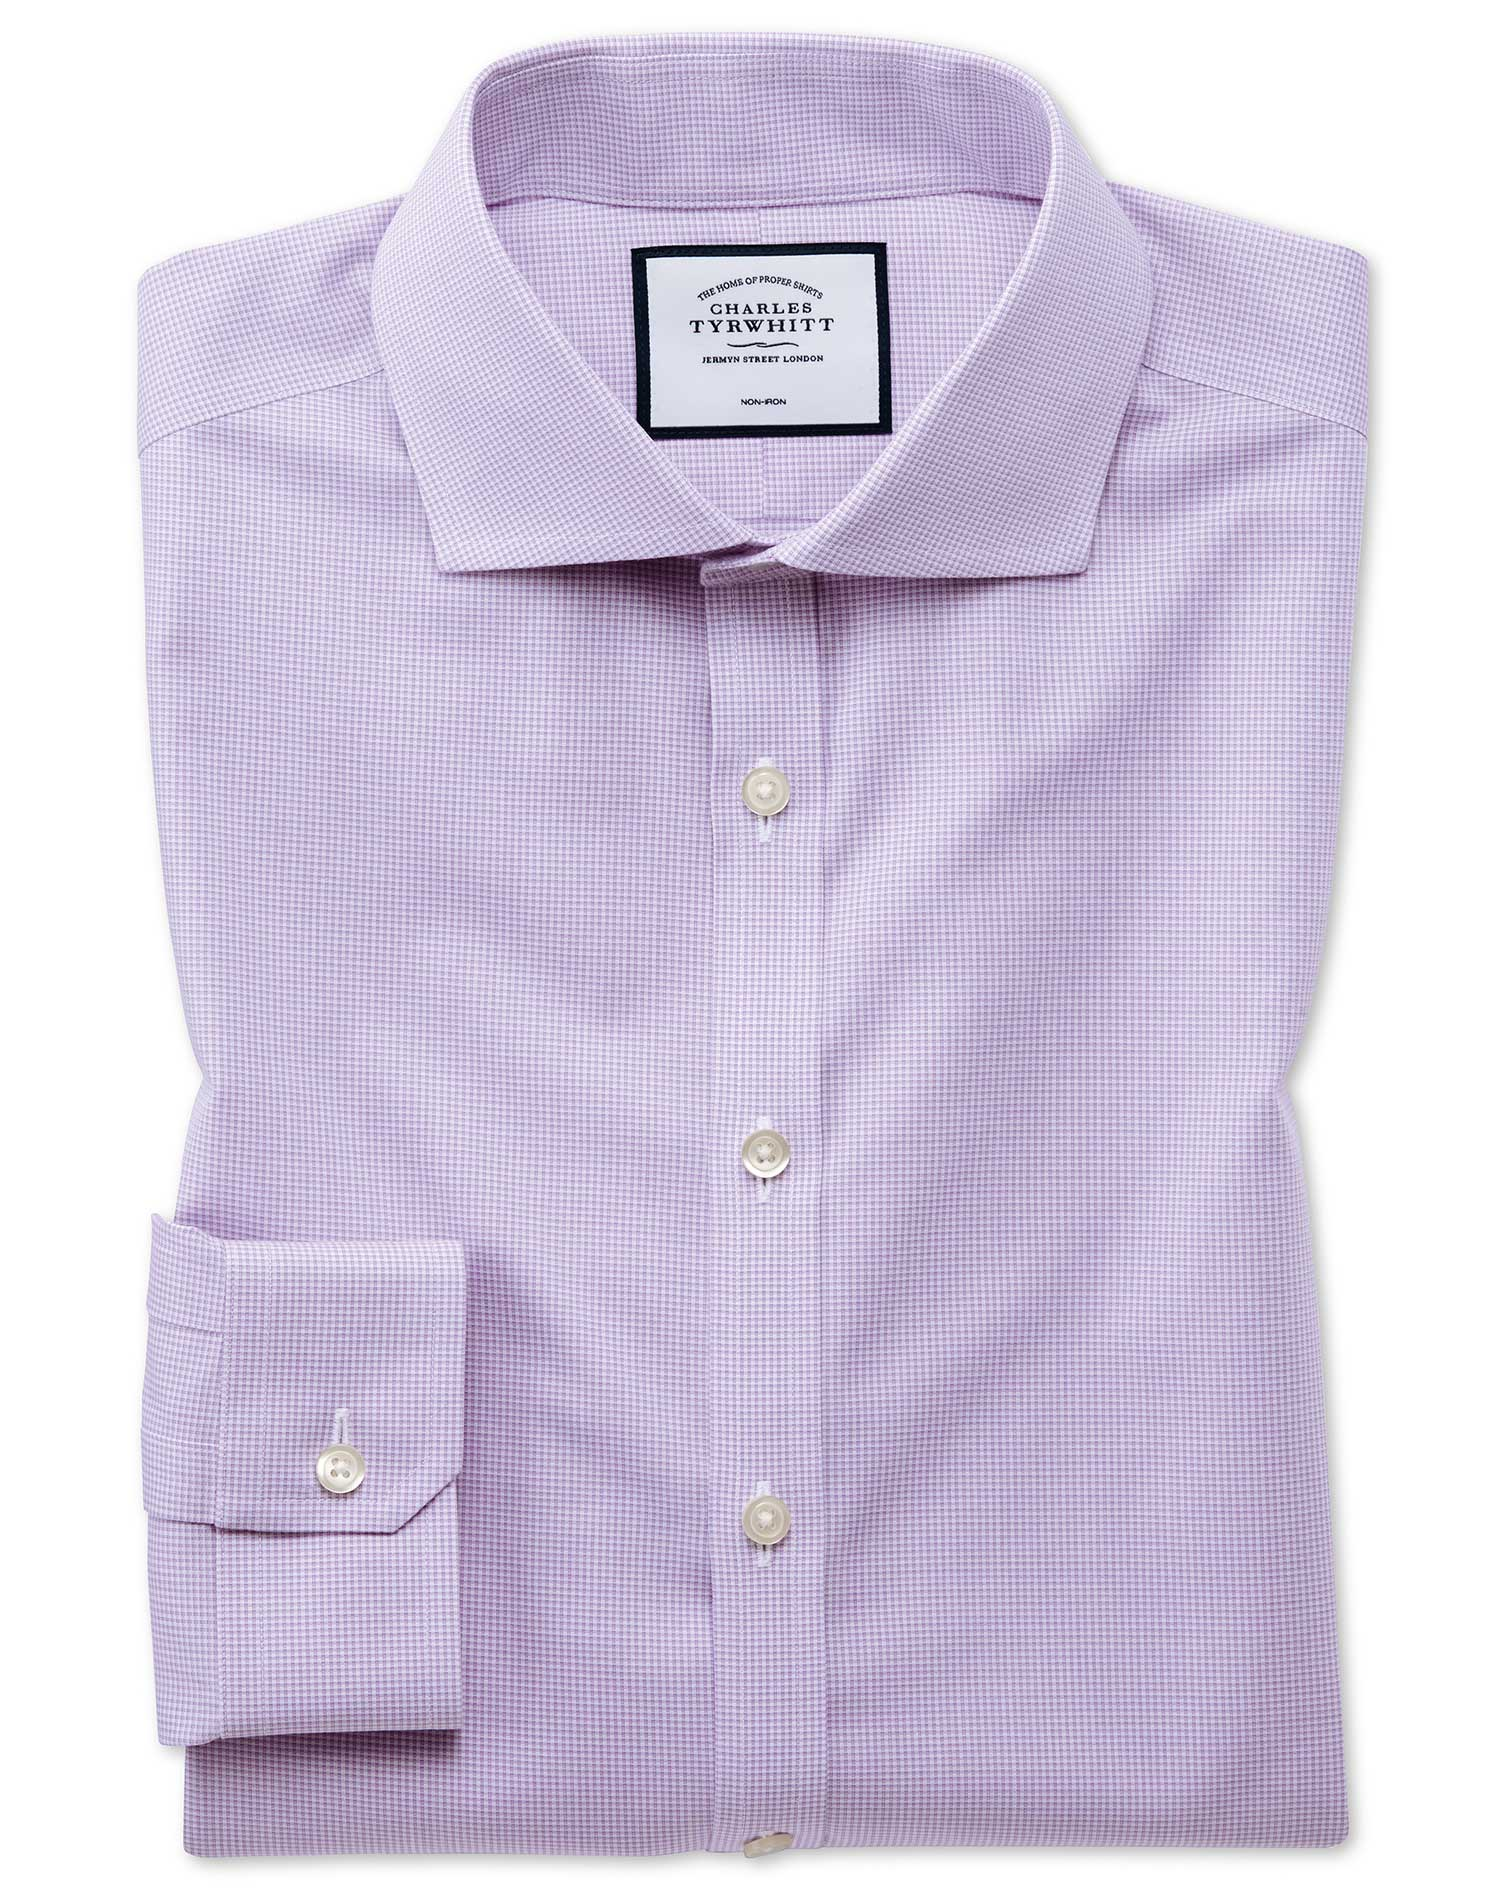 Super Slim Fit Non-Iron 4-Way Stretch Lilac Check Cotton Formal Shirt Single Cuff Size 16/33 by Char